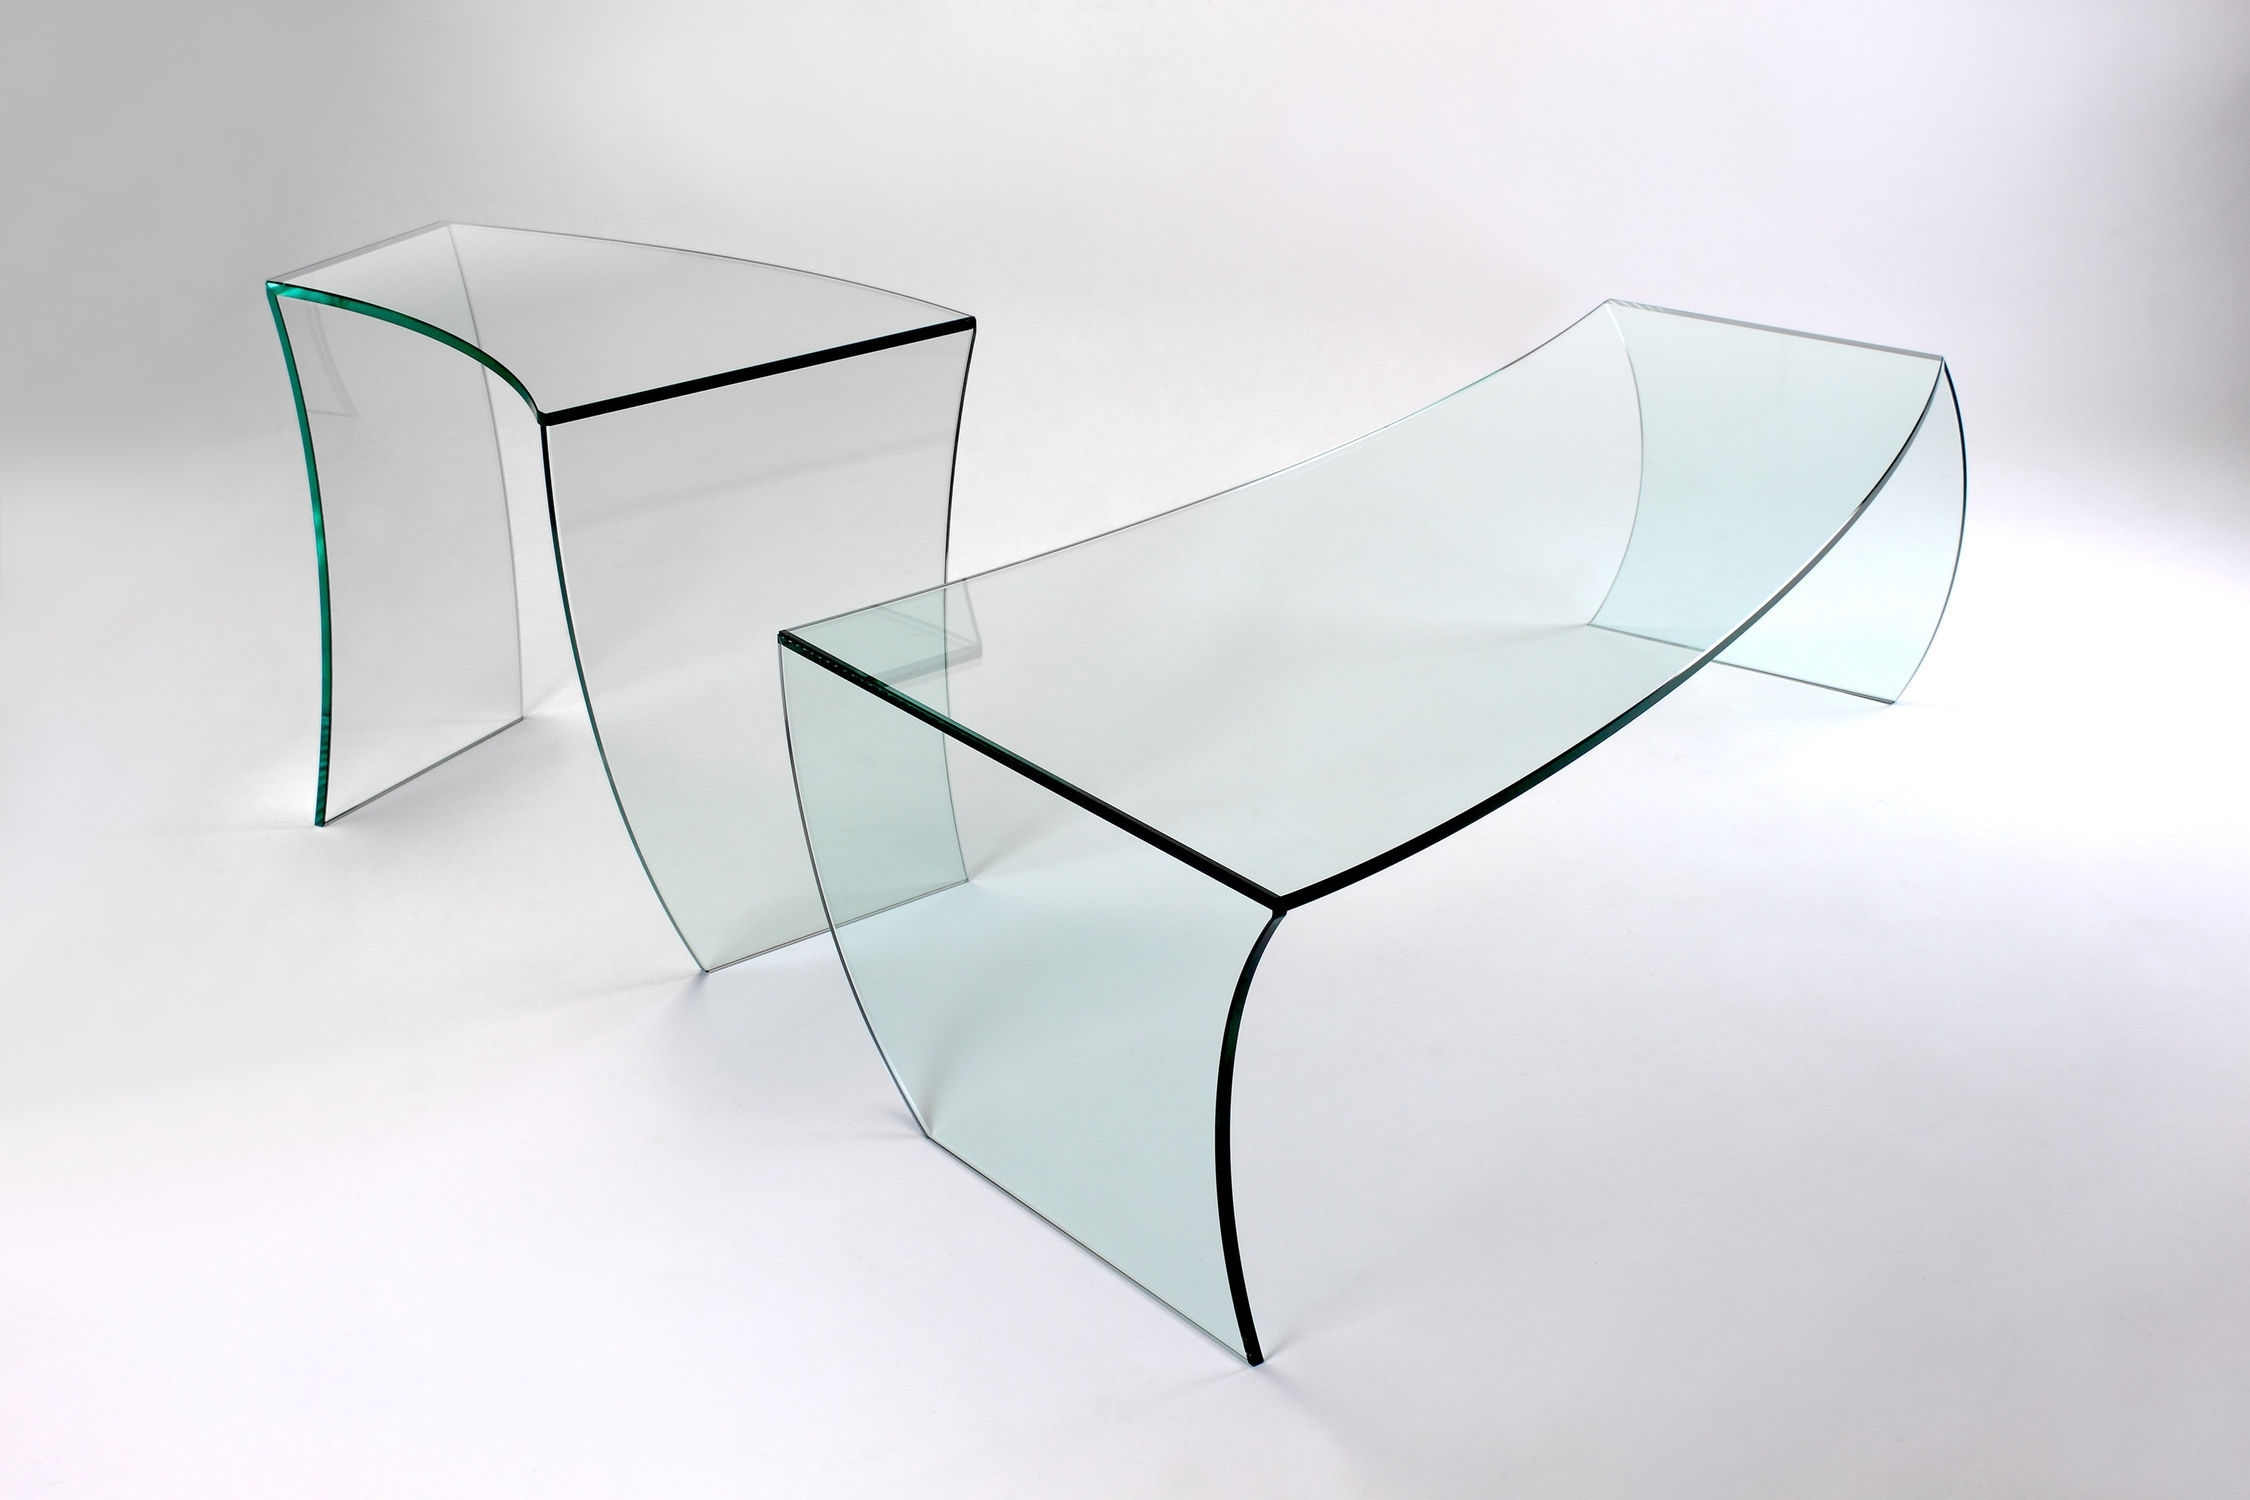 Contemporary Coffee Table / Glass / Curved – Bent Straights Intended For Contemporary Curves Coffee Tables (View 7 of 30)